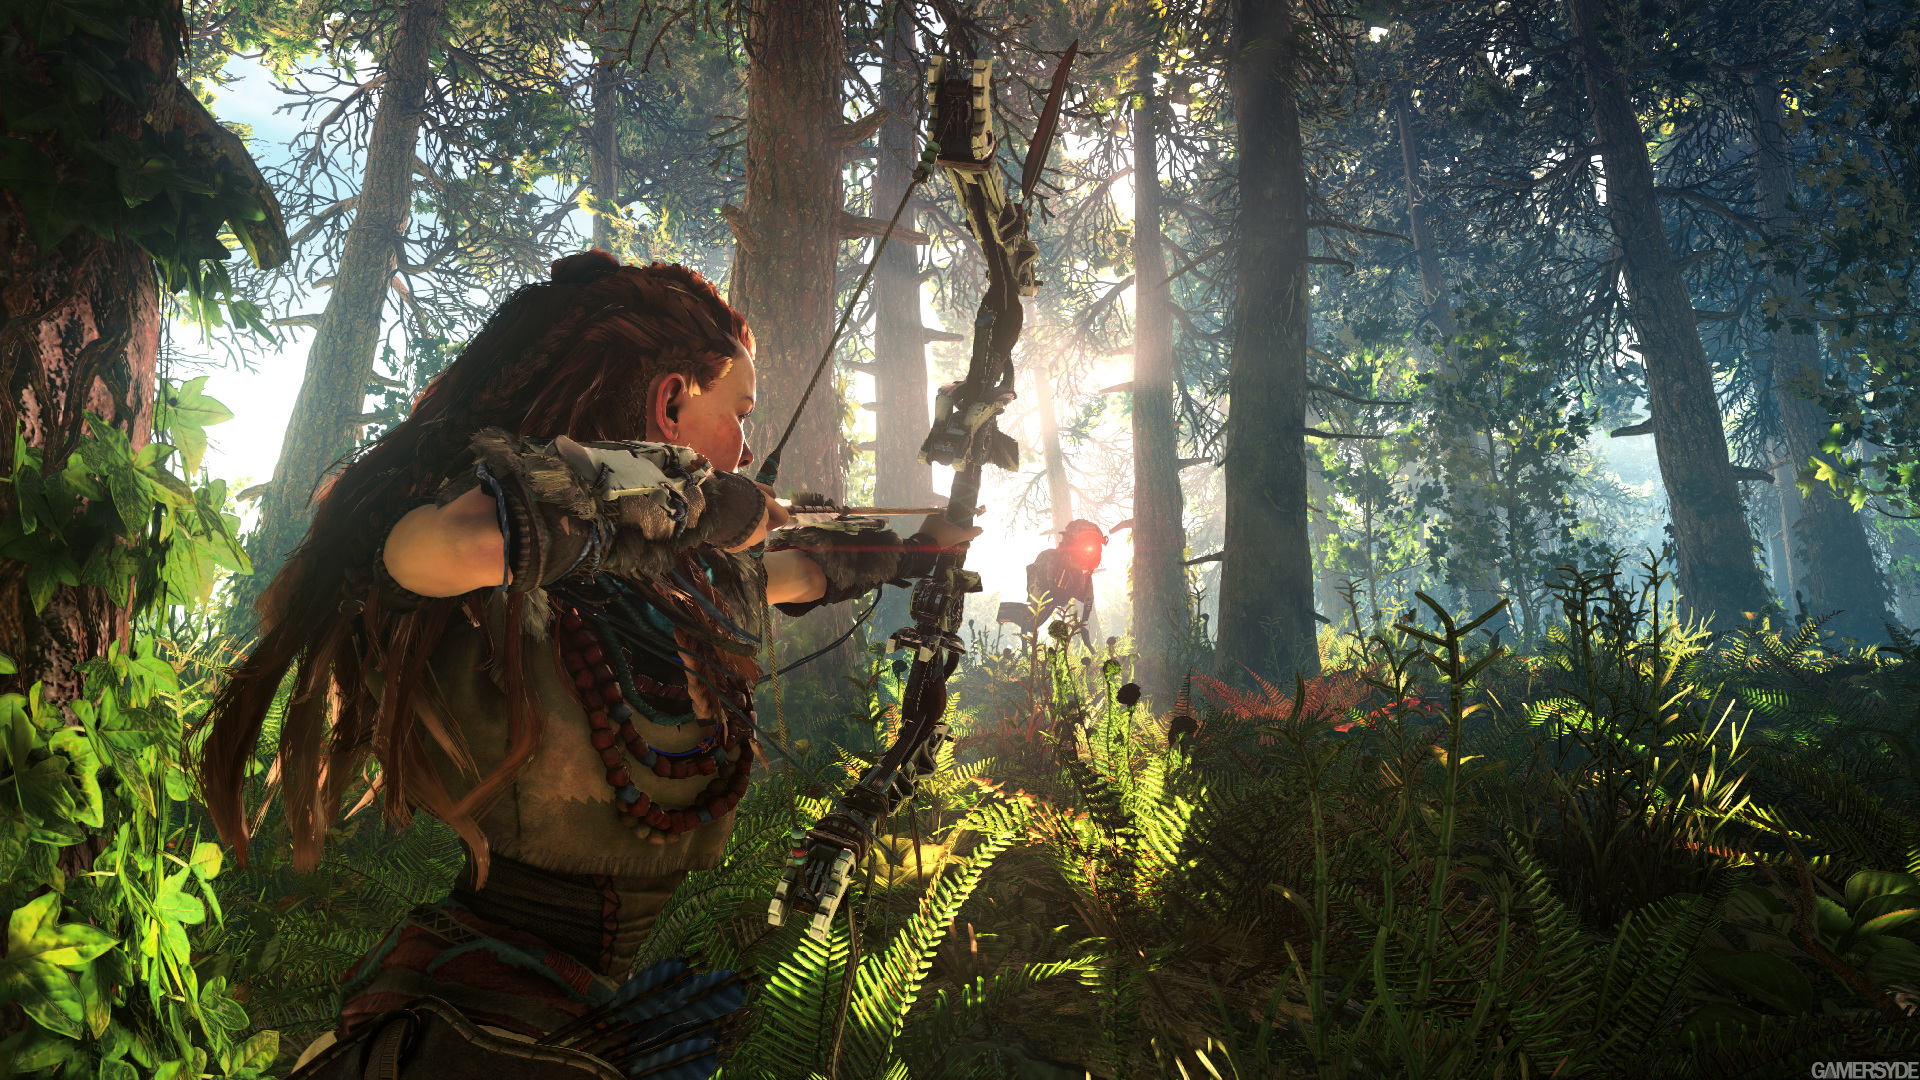 image_horizon_zero_dawn-28643-3283_0008.